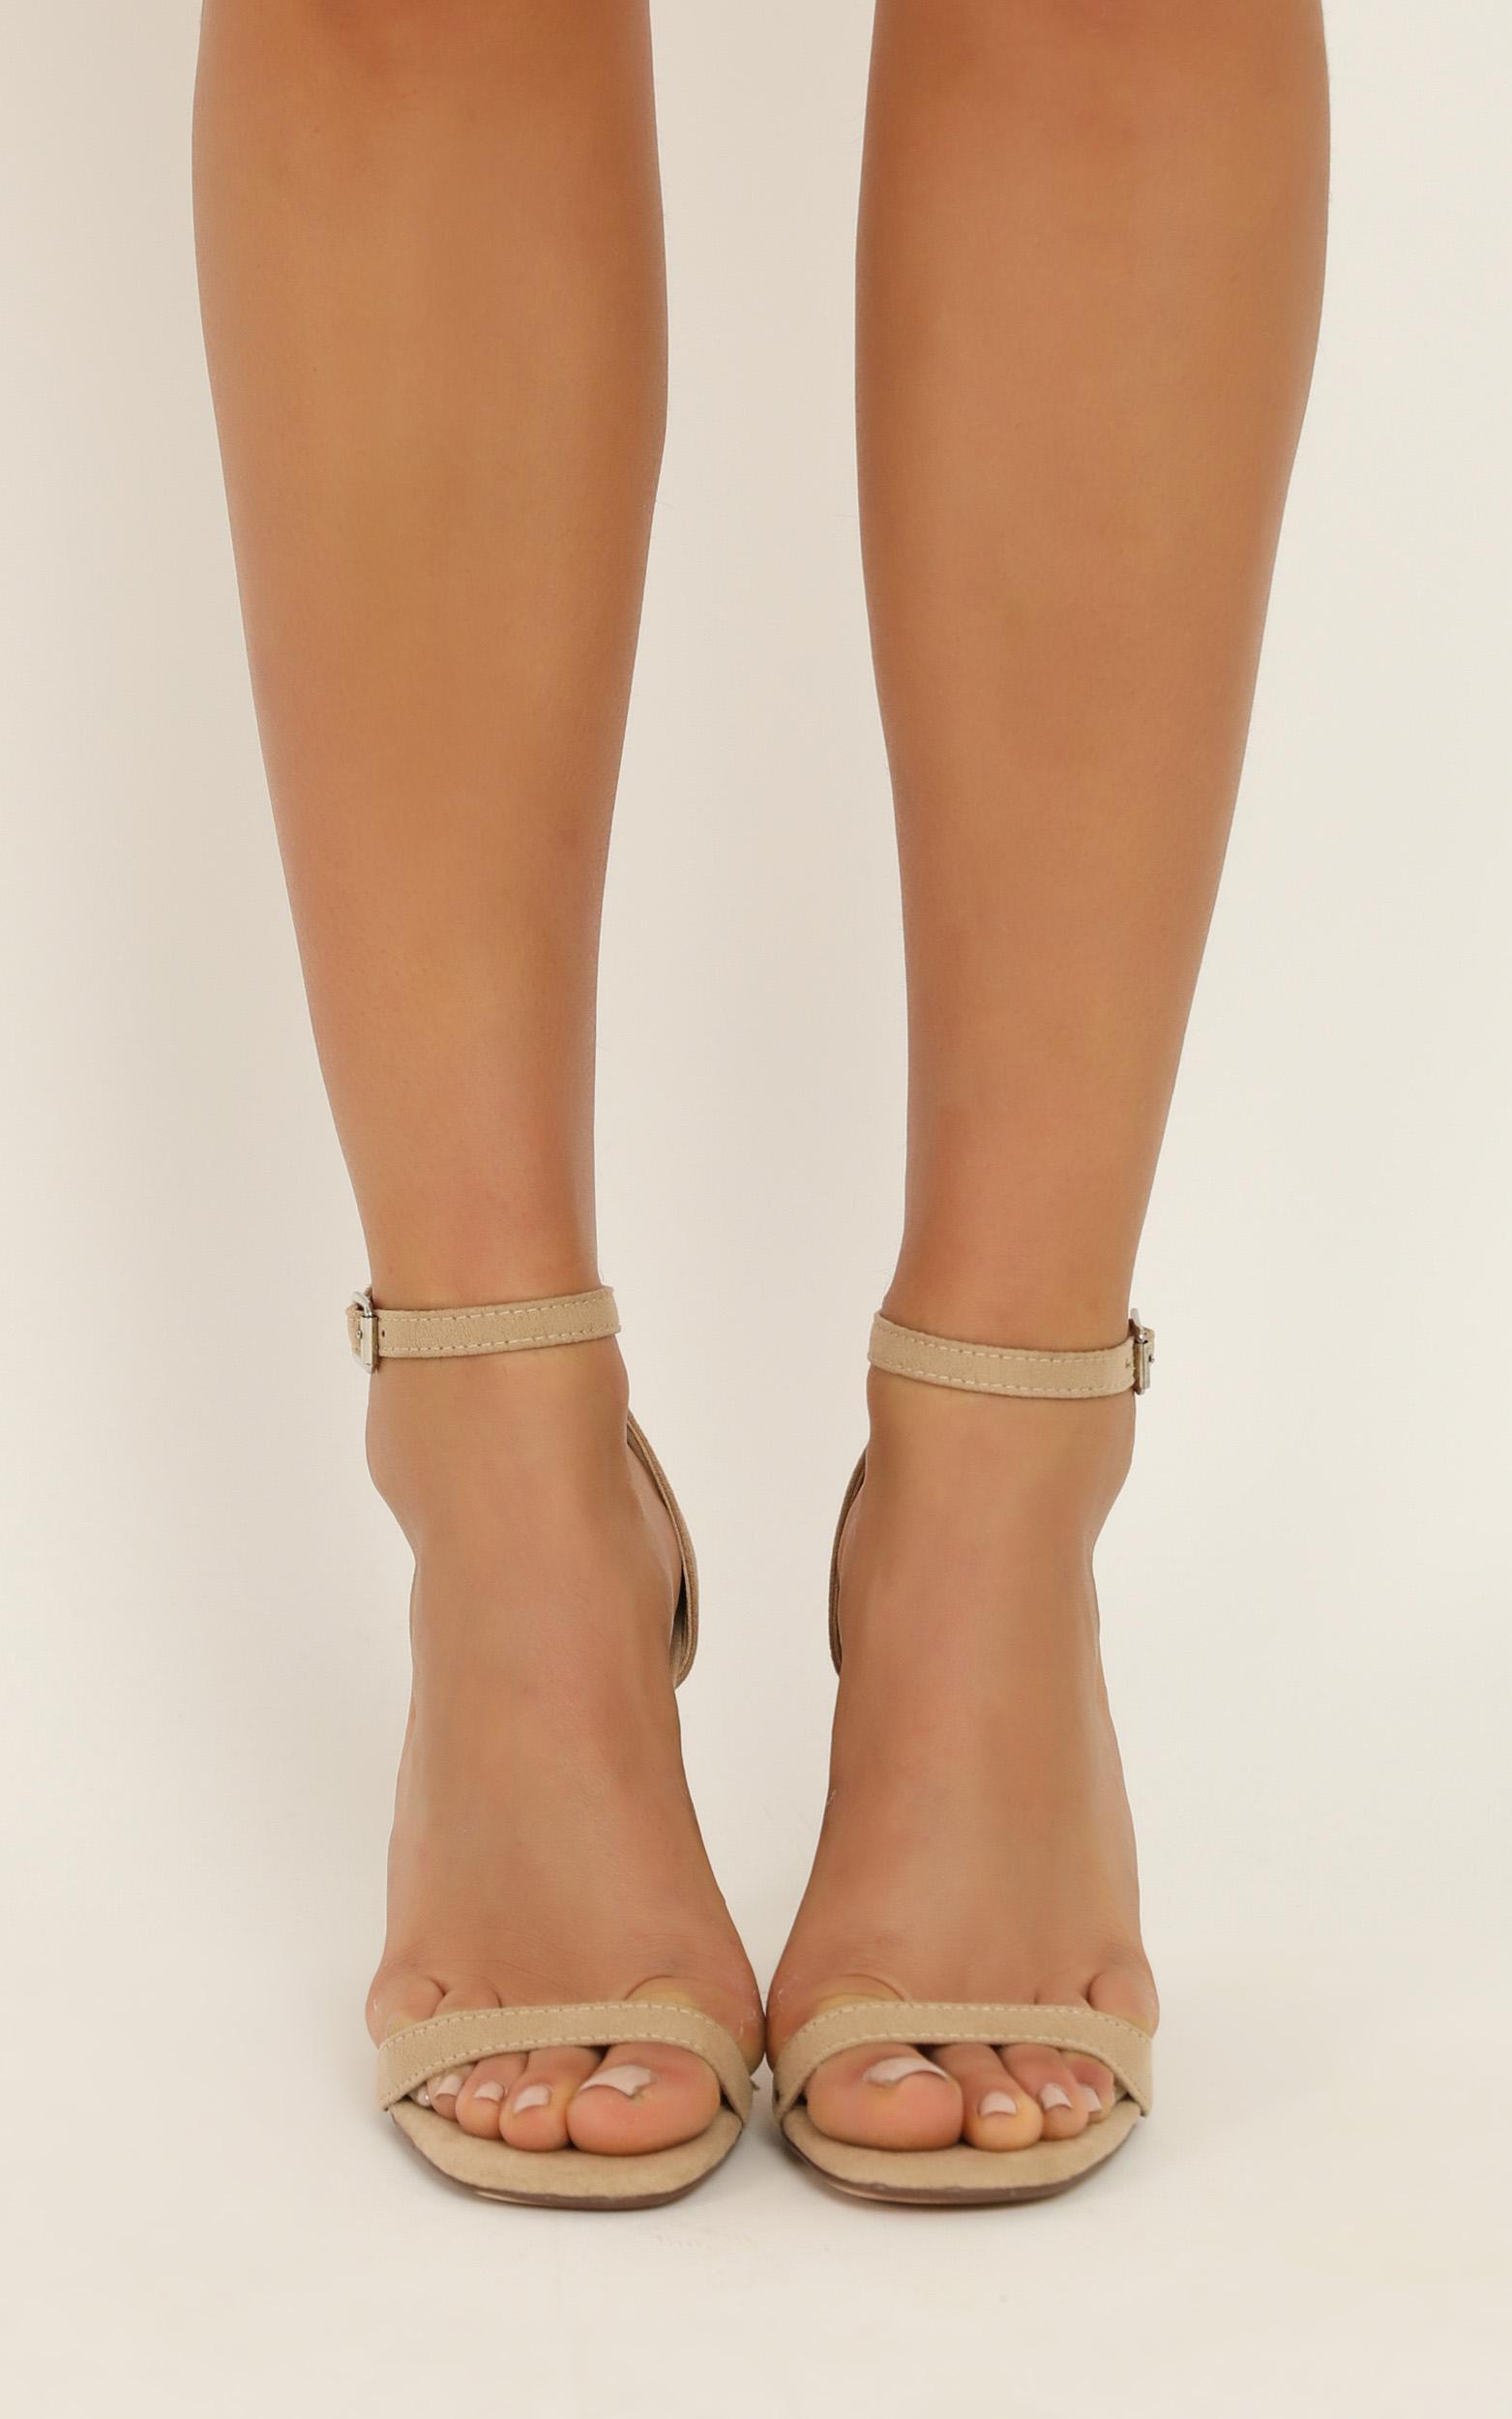 Therapy - Luna Heels in cashew micro - 5, Beige, hi-res image number null